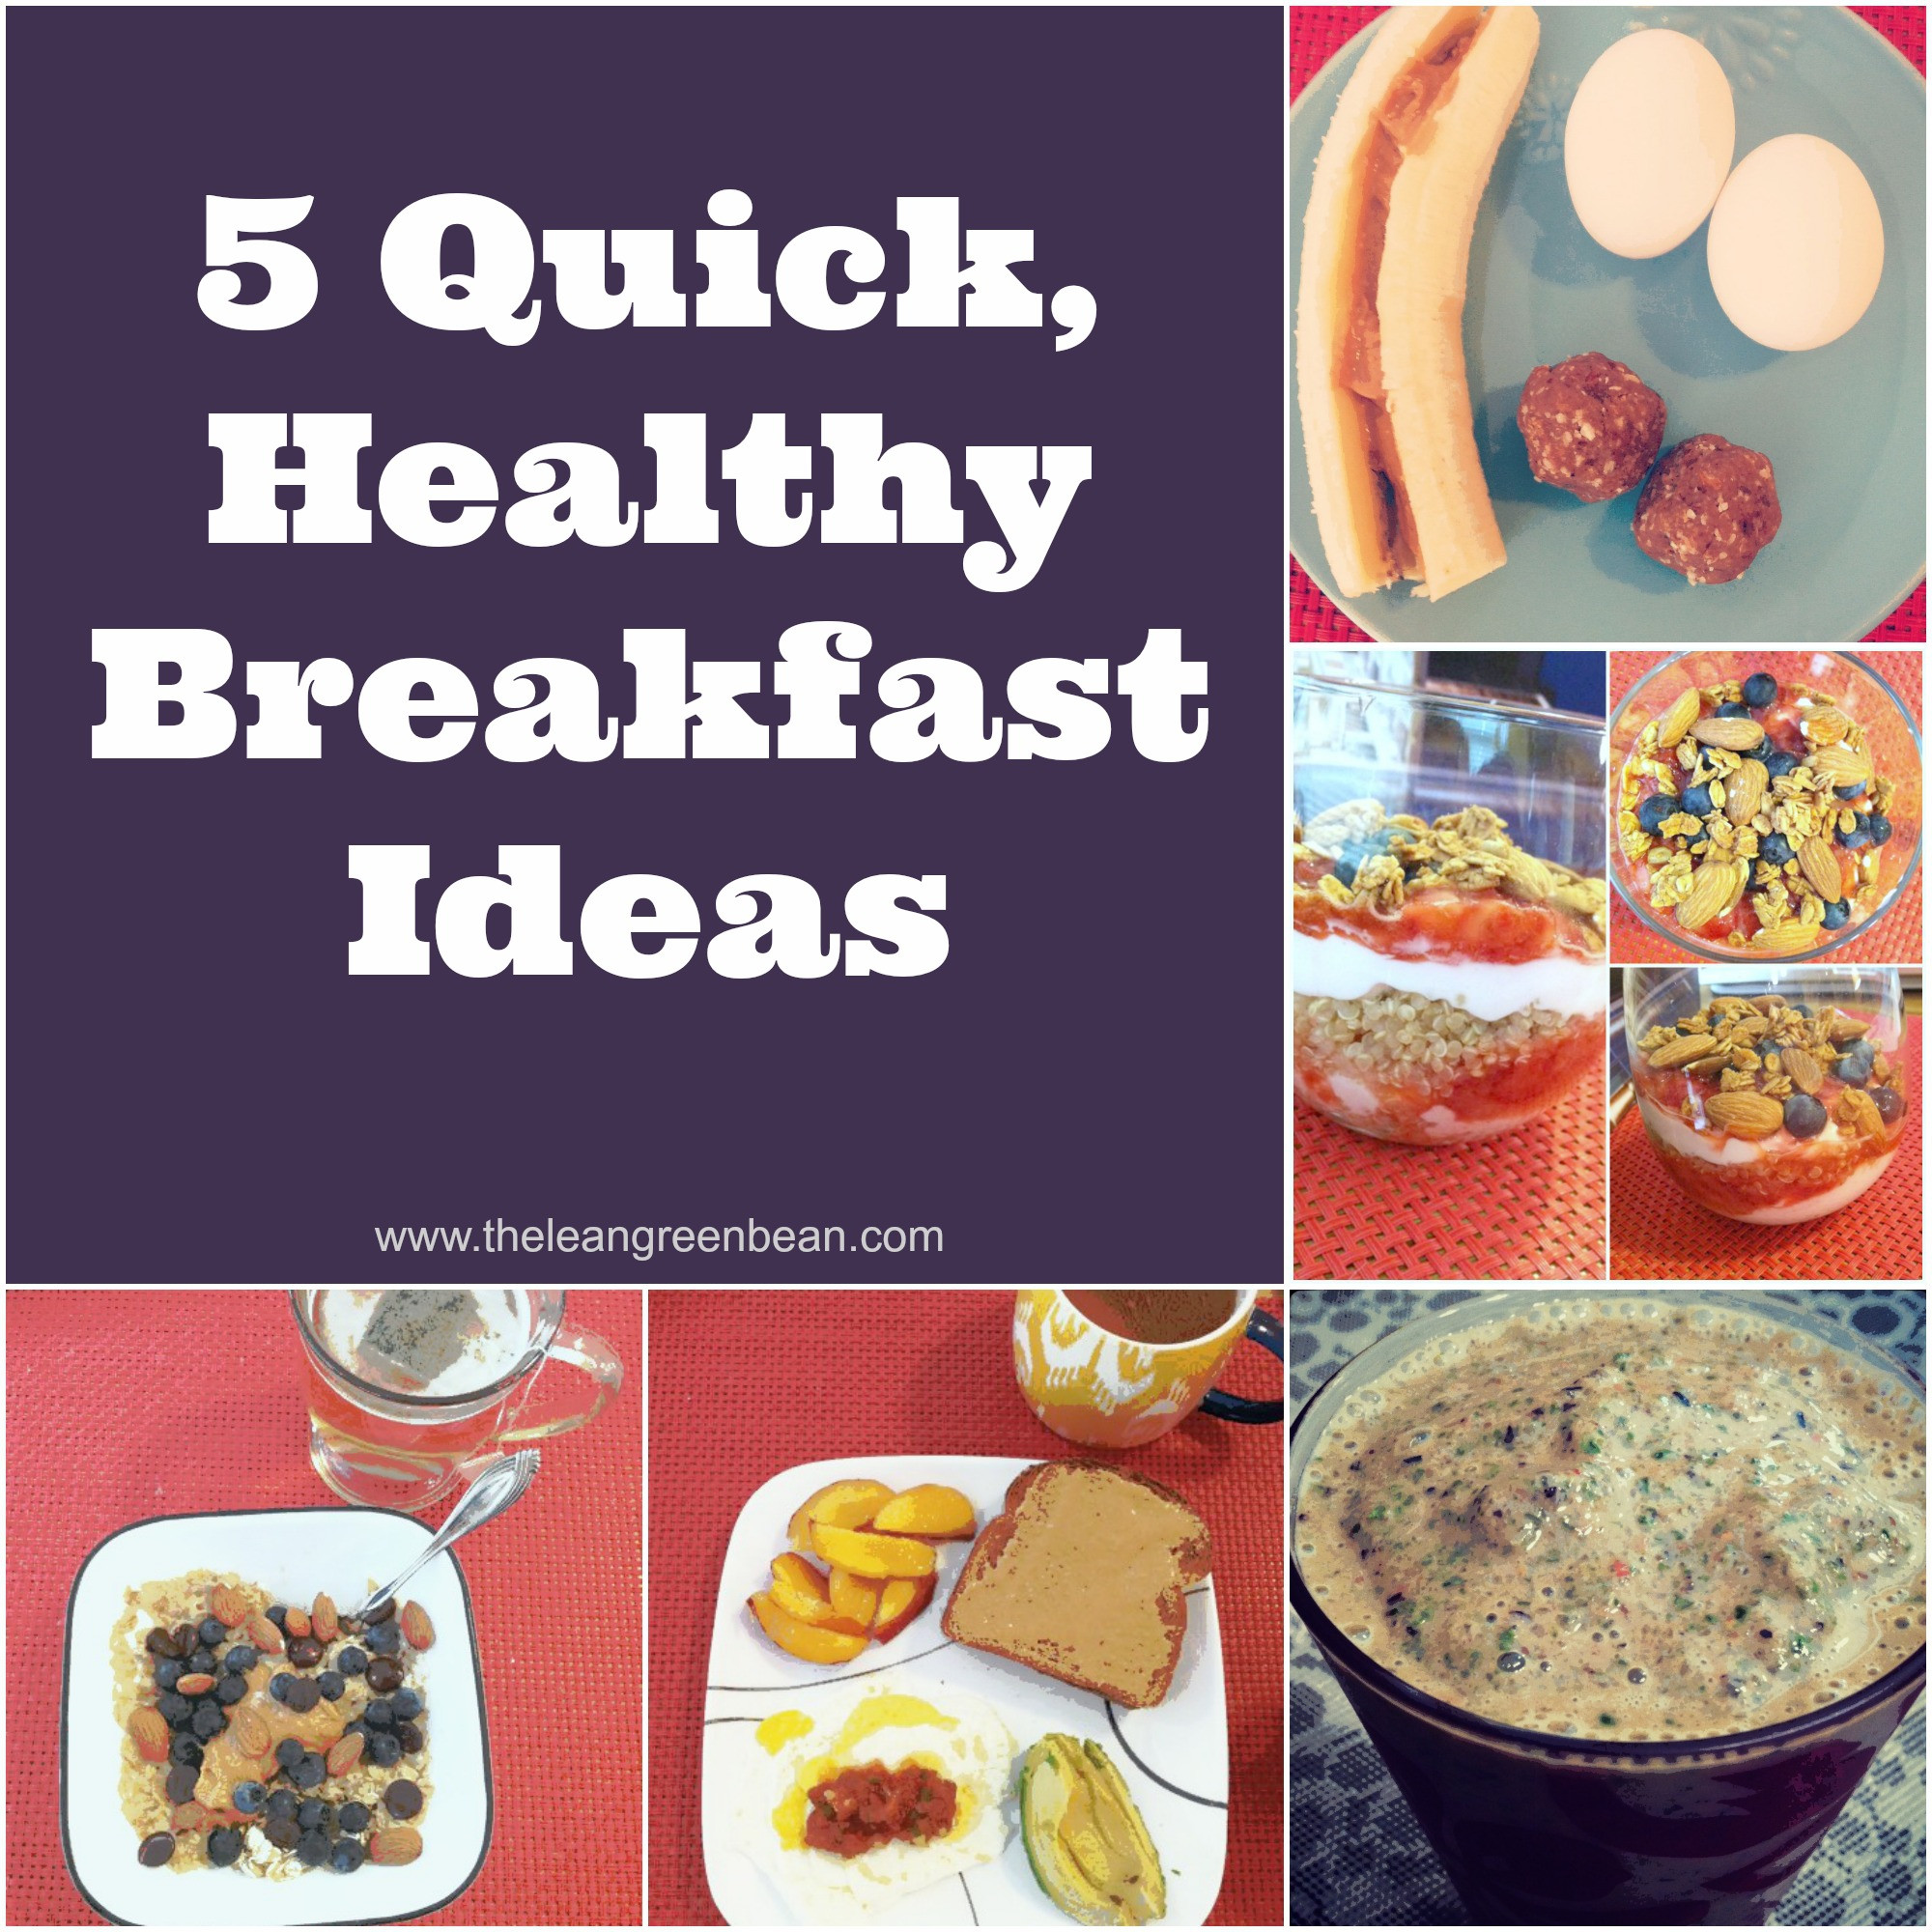 Quick Healthy Breakfast Recipes  5 Quick Healthy Breakfast Ideas from a Registered Dietitian